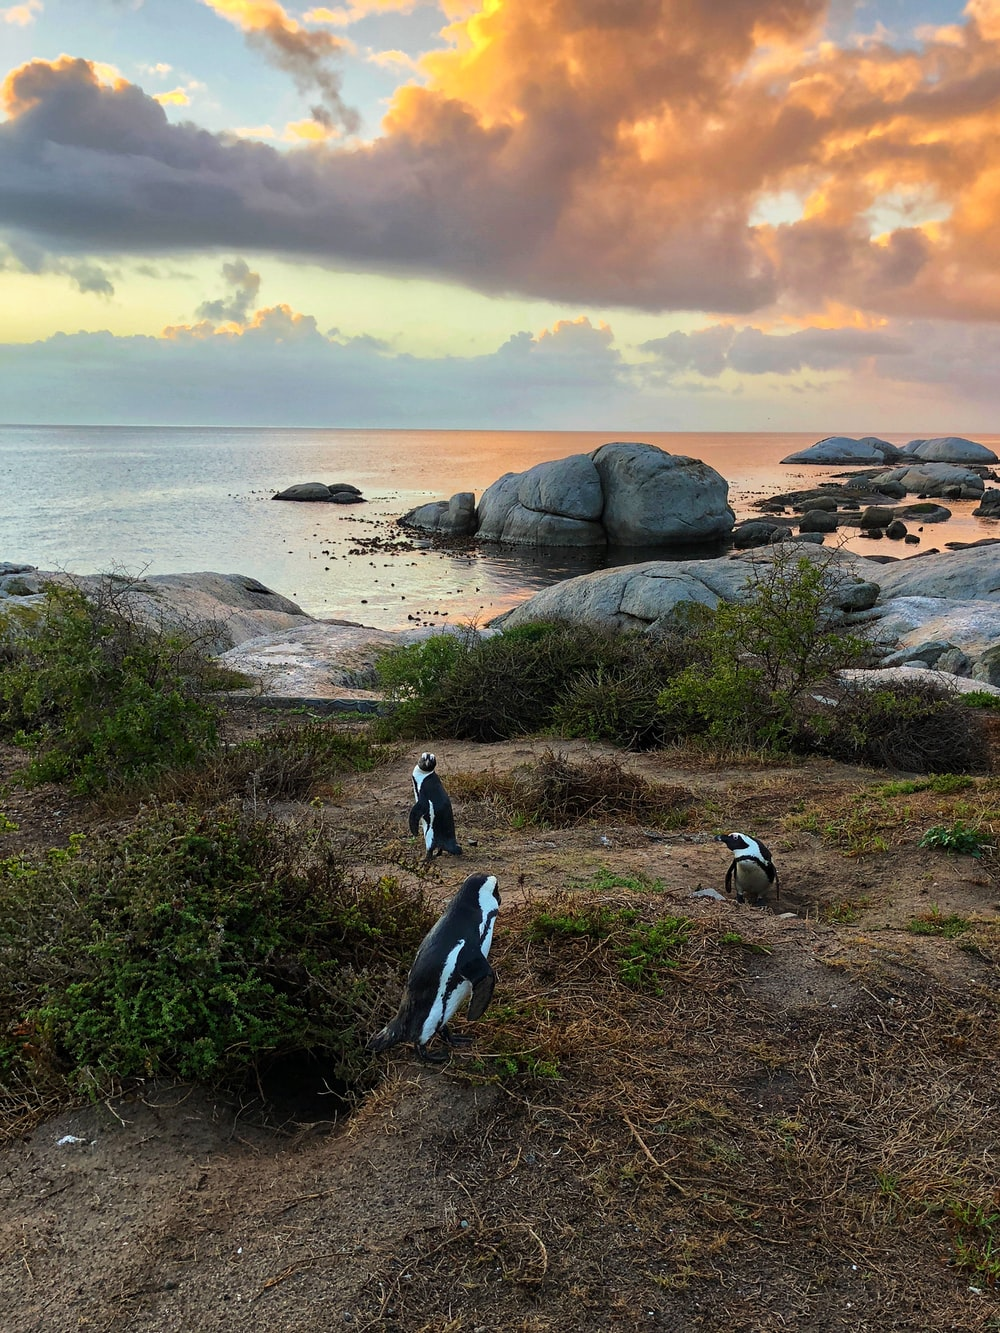 three penguins on grass field near body of water